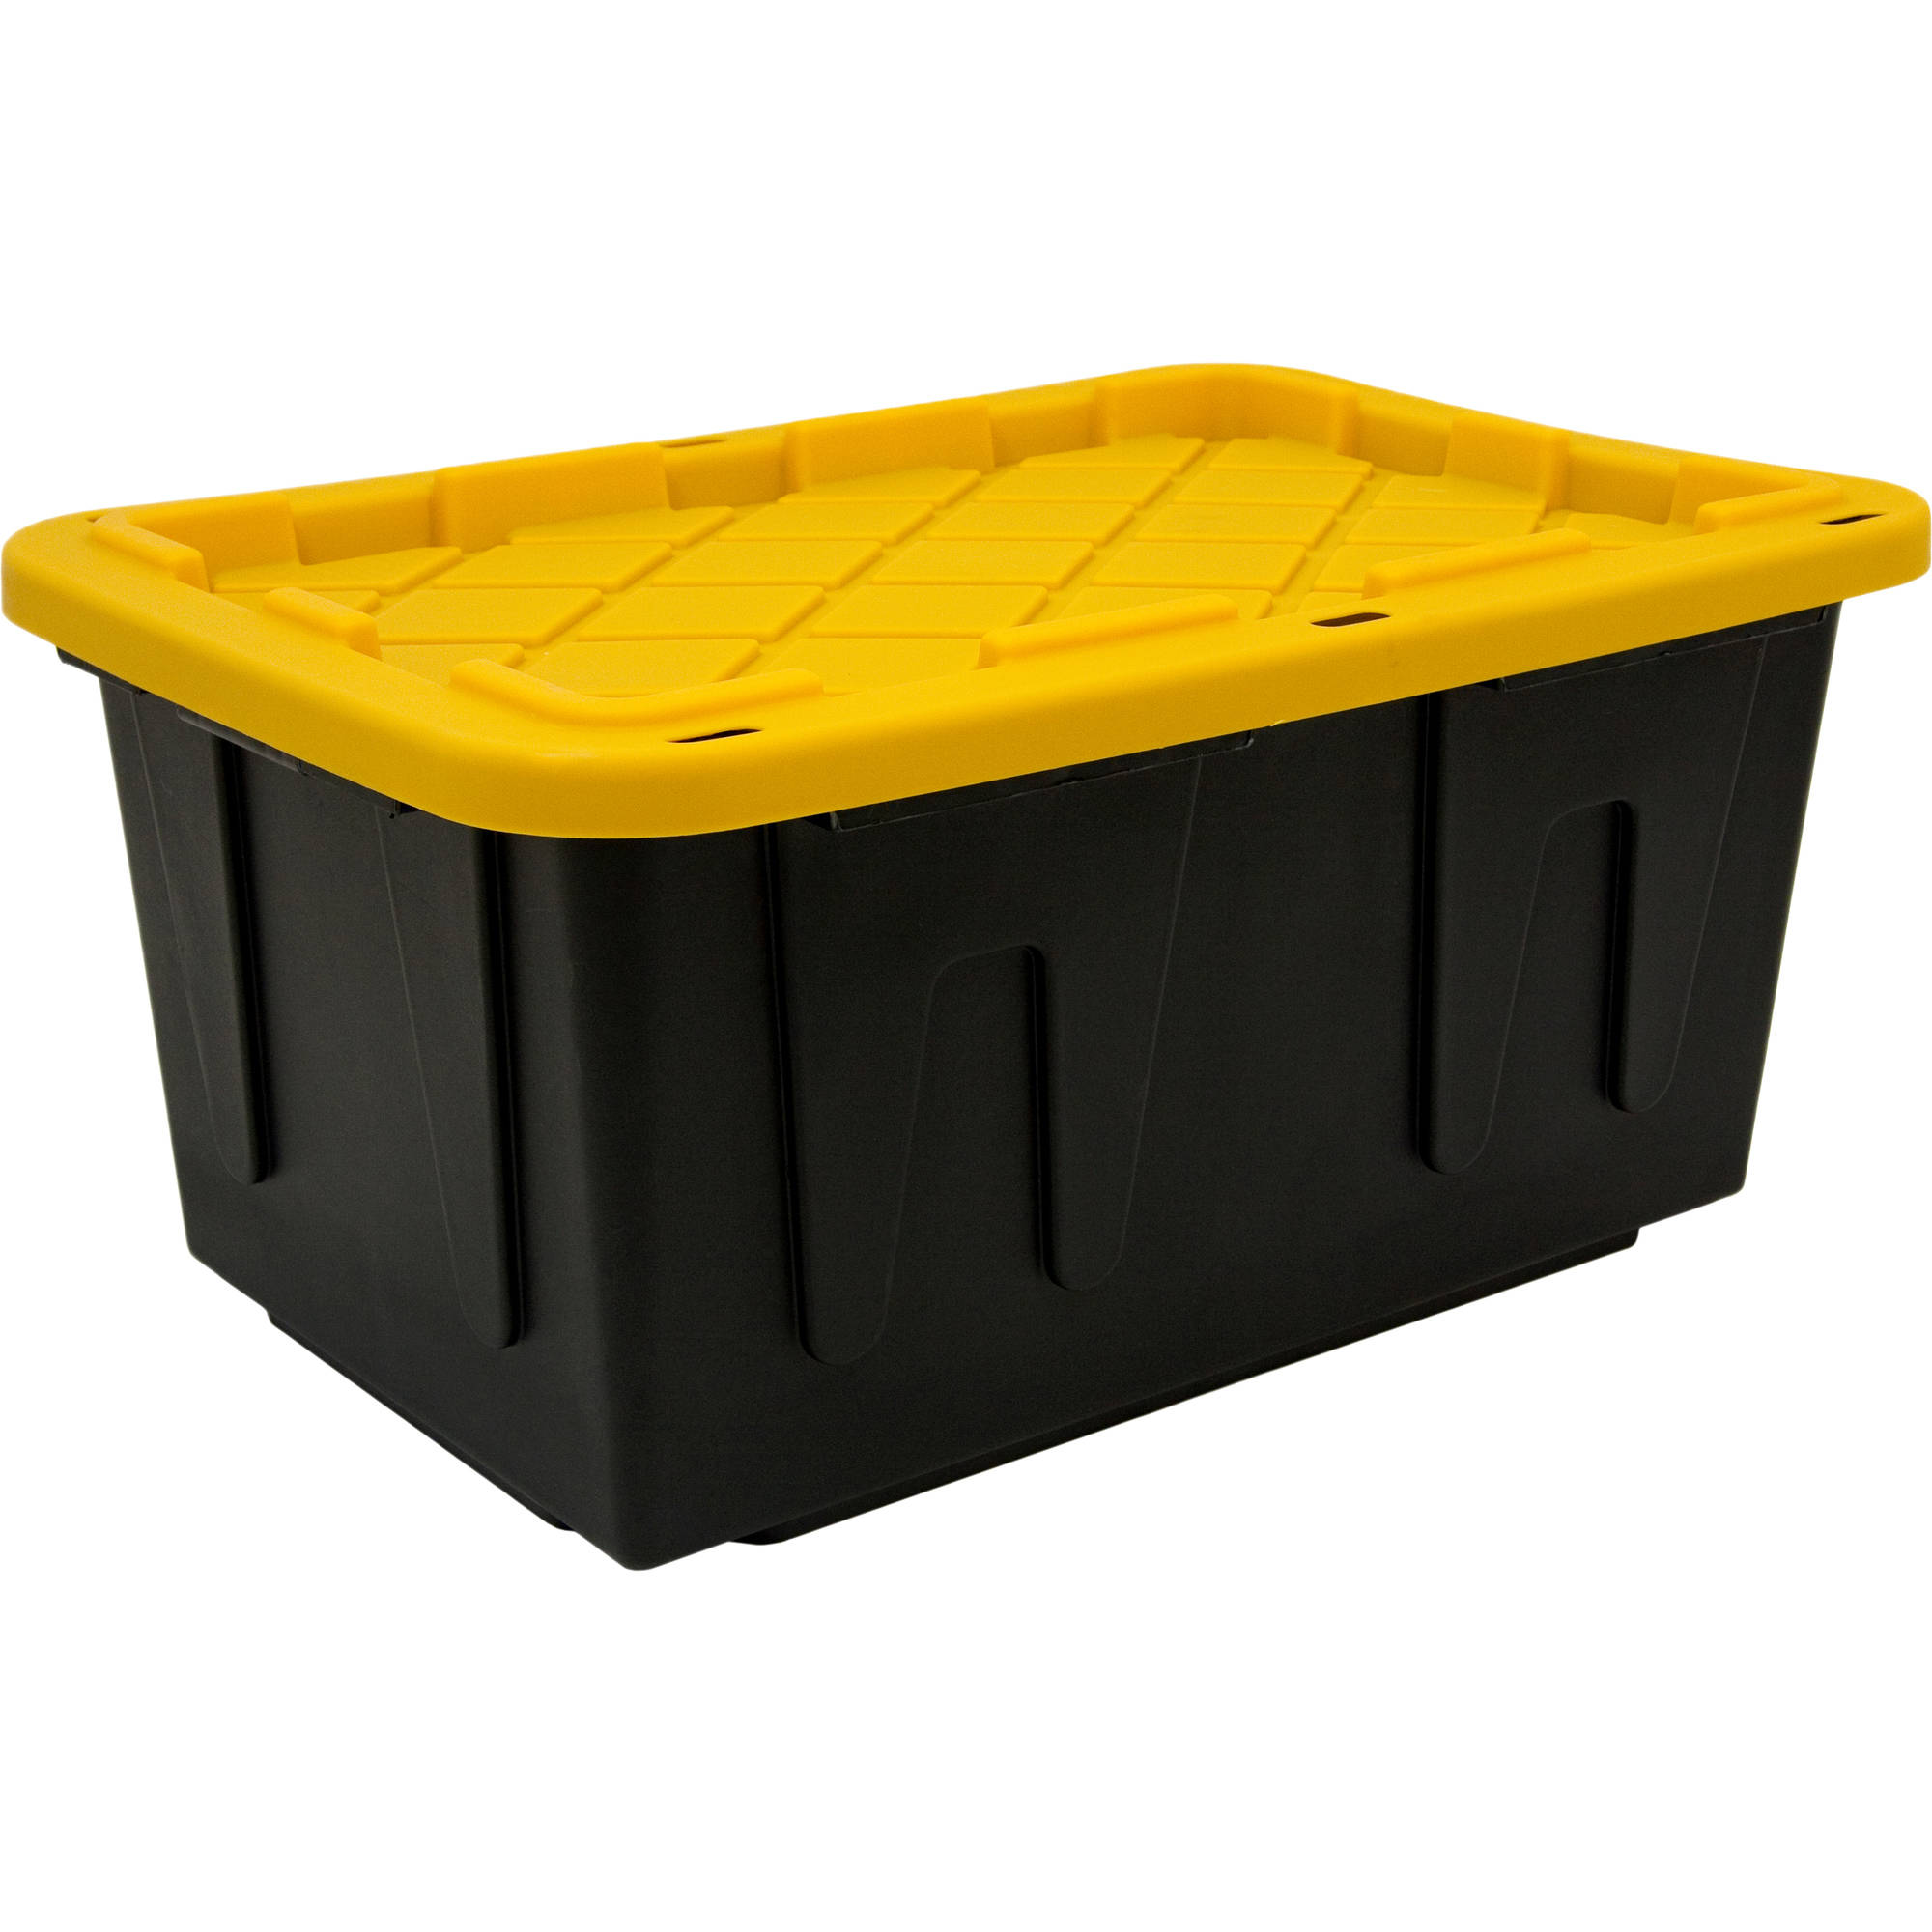 Most Inspiring Plastic Storage Bins With Lids - d05000e4-10ac-4a35-a630-155af3d4f506_1  Picture_19649.jpeg